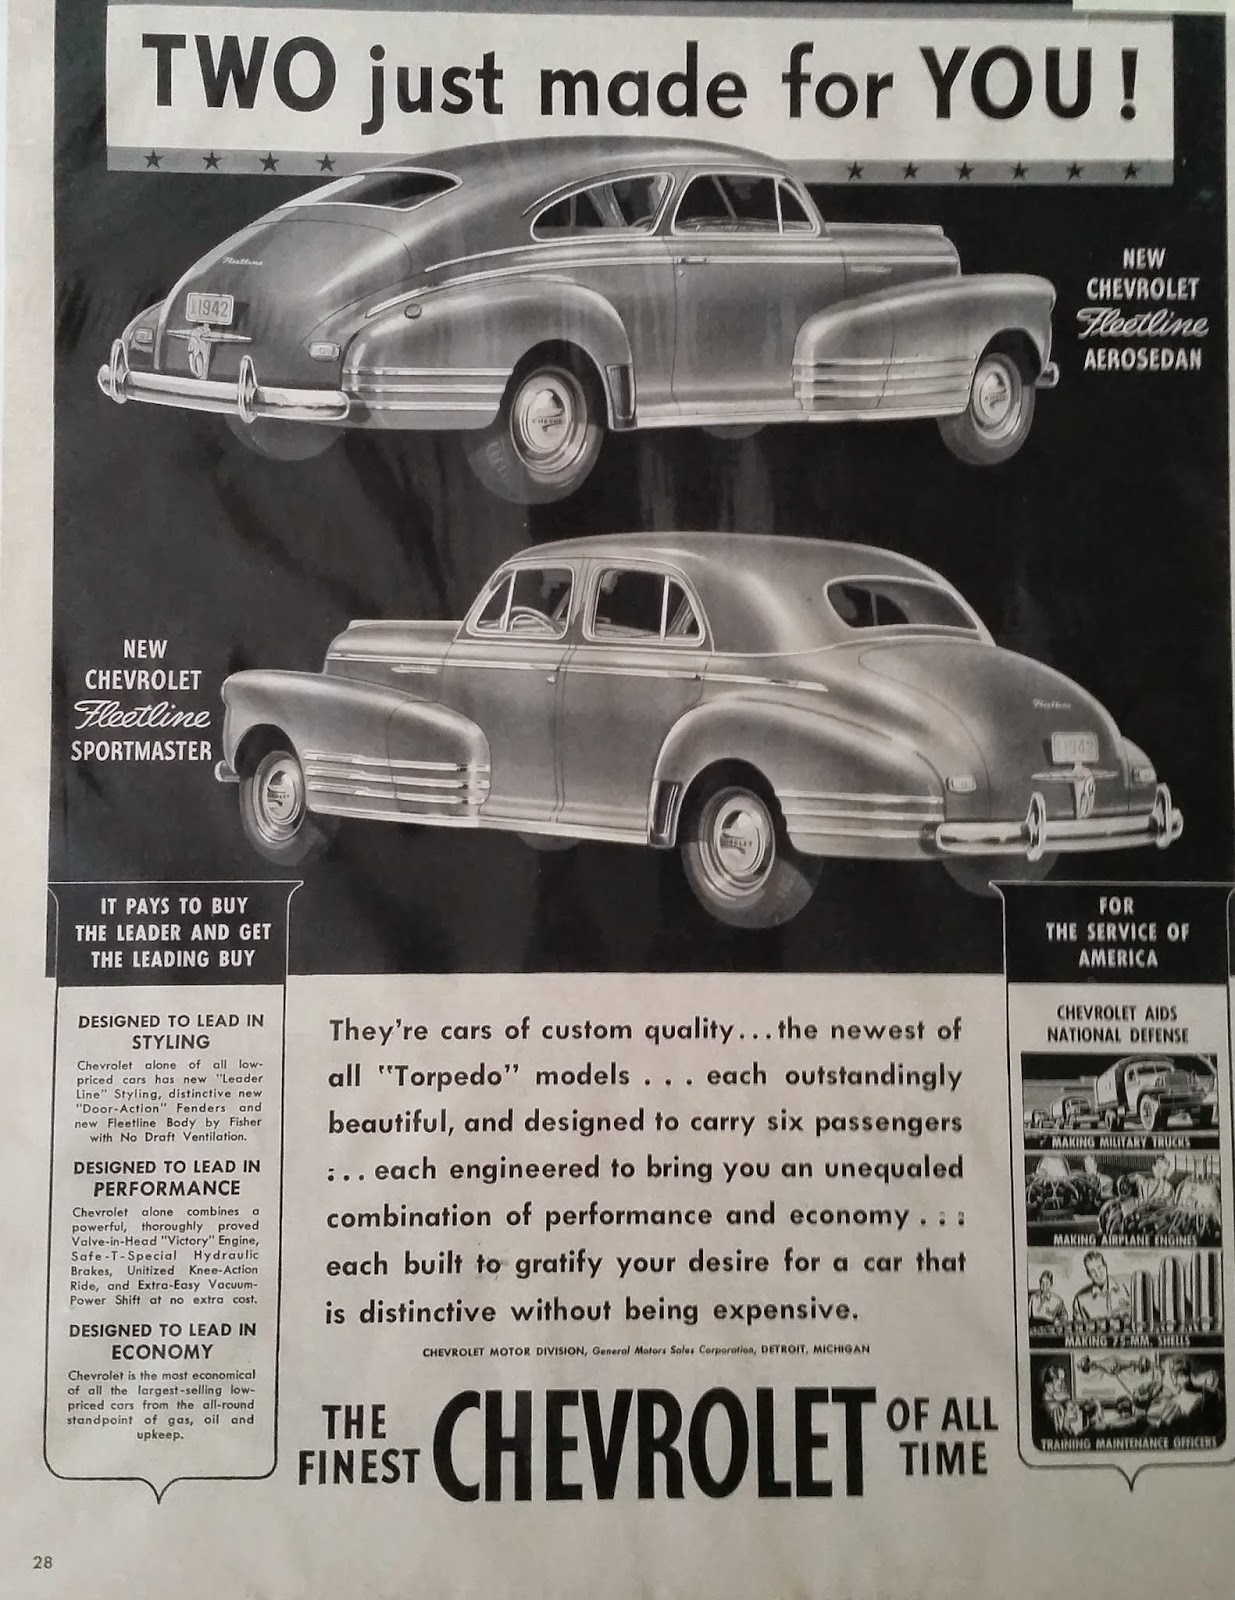 Apple Pie And Chevrolet 1942 Chevy Truck Patina As Many Of You Know Auto Production Stopped In February That Year Didnt Resume Until October 1945 The 42 Ads Are Also Plain Mostly Text